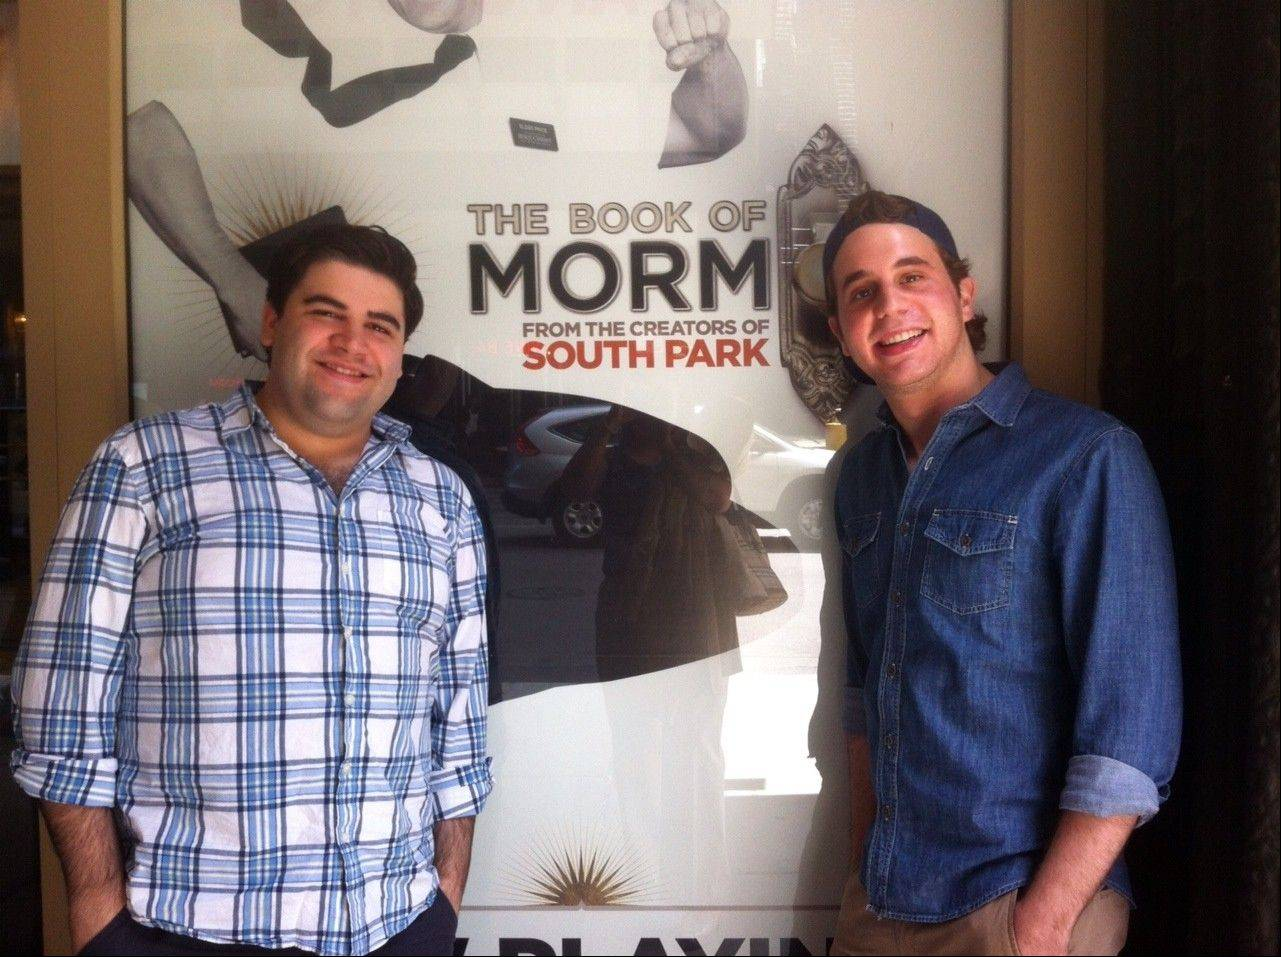 Suburban man the standby star of 'Book of Mormon'